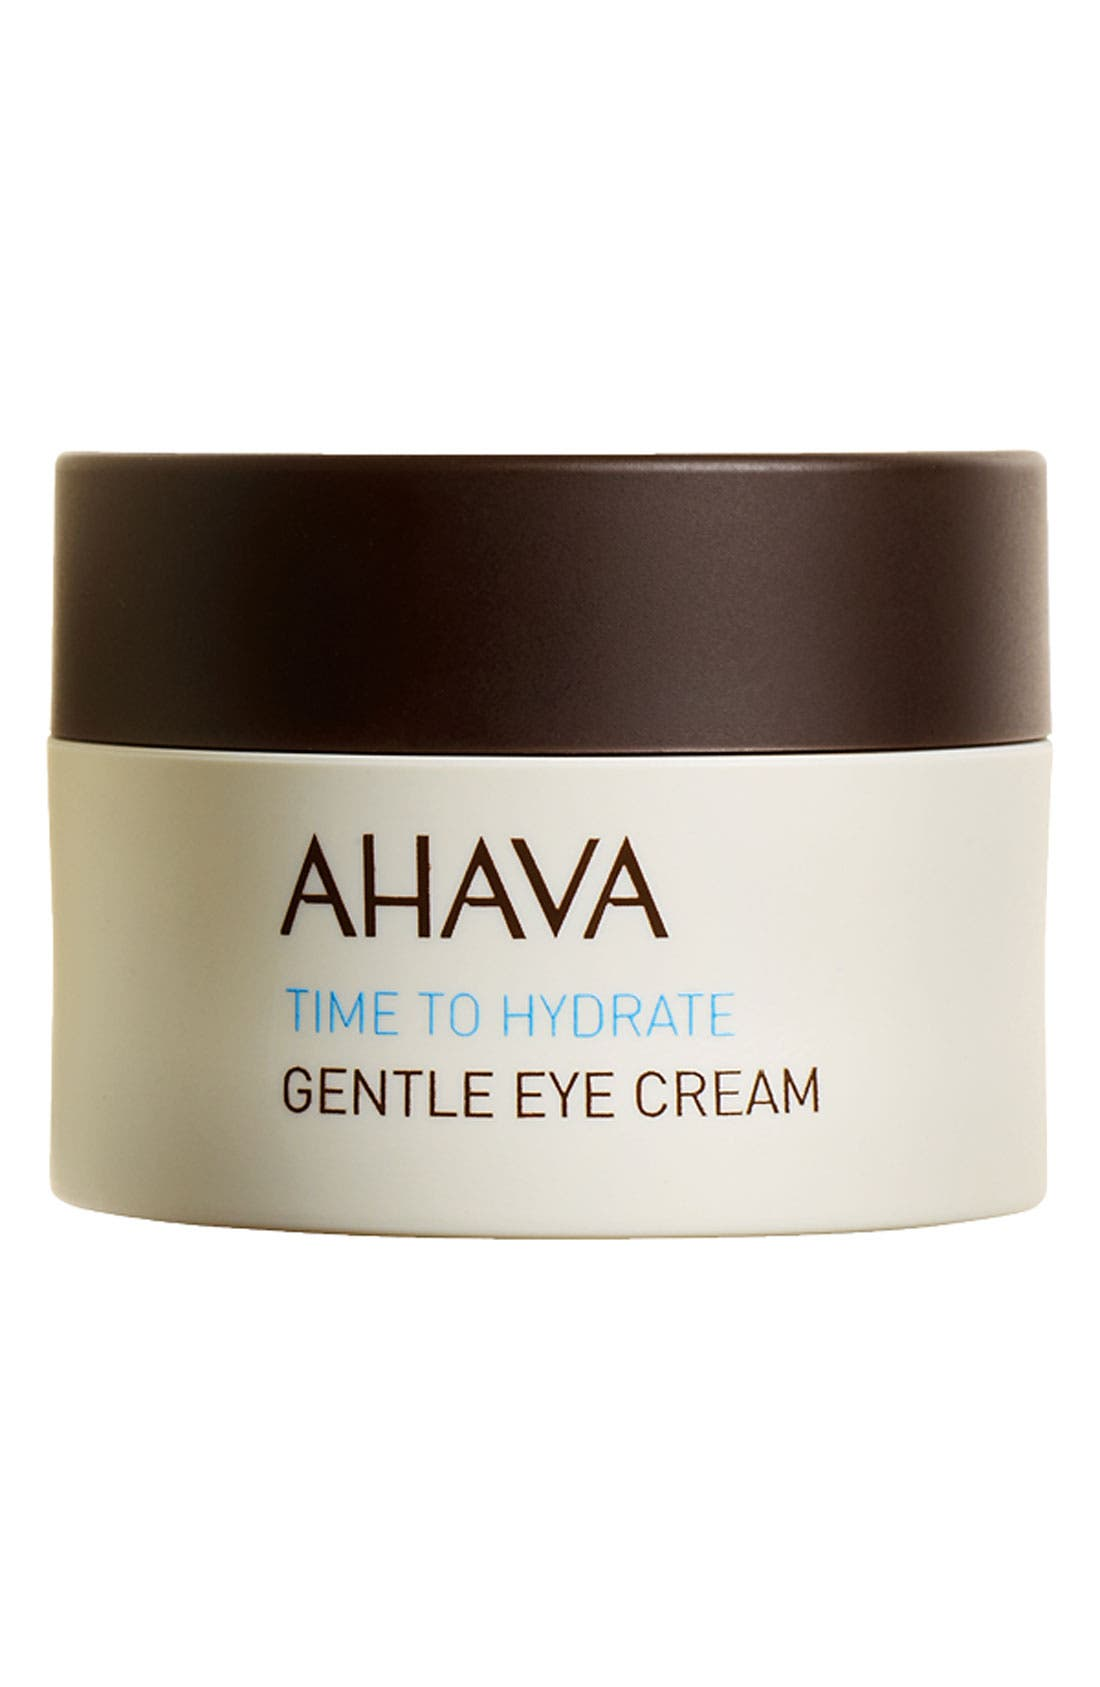 AHAVA 'Time to Hydrate' Gentle Eye Cream